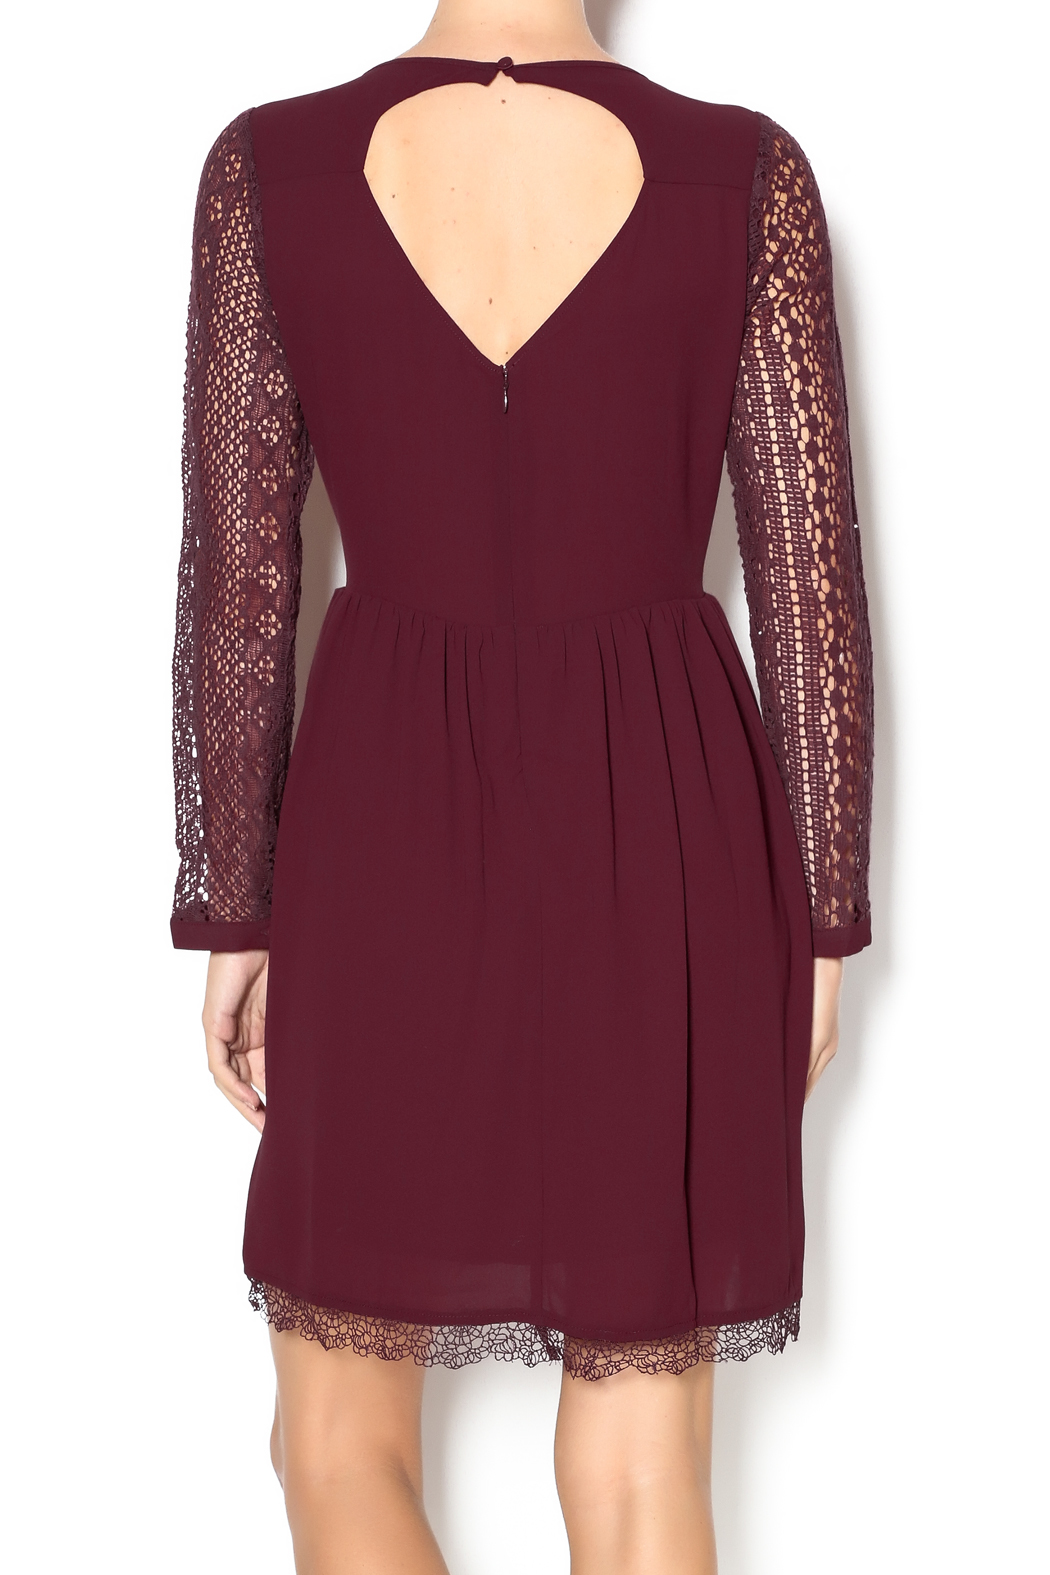 Heartloom Merlot Lace Dress - Back Cropped Image